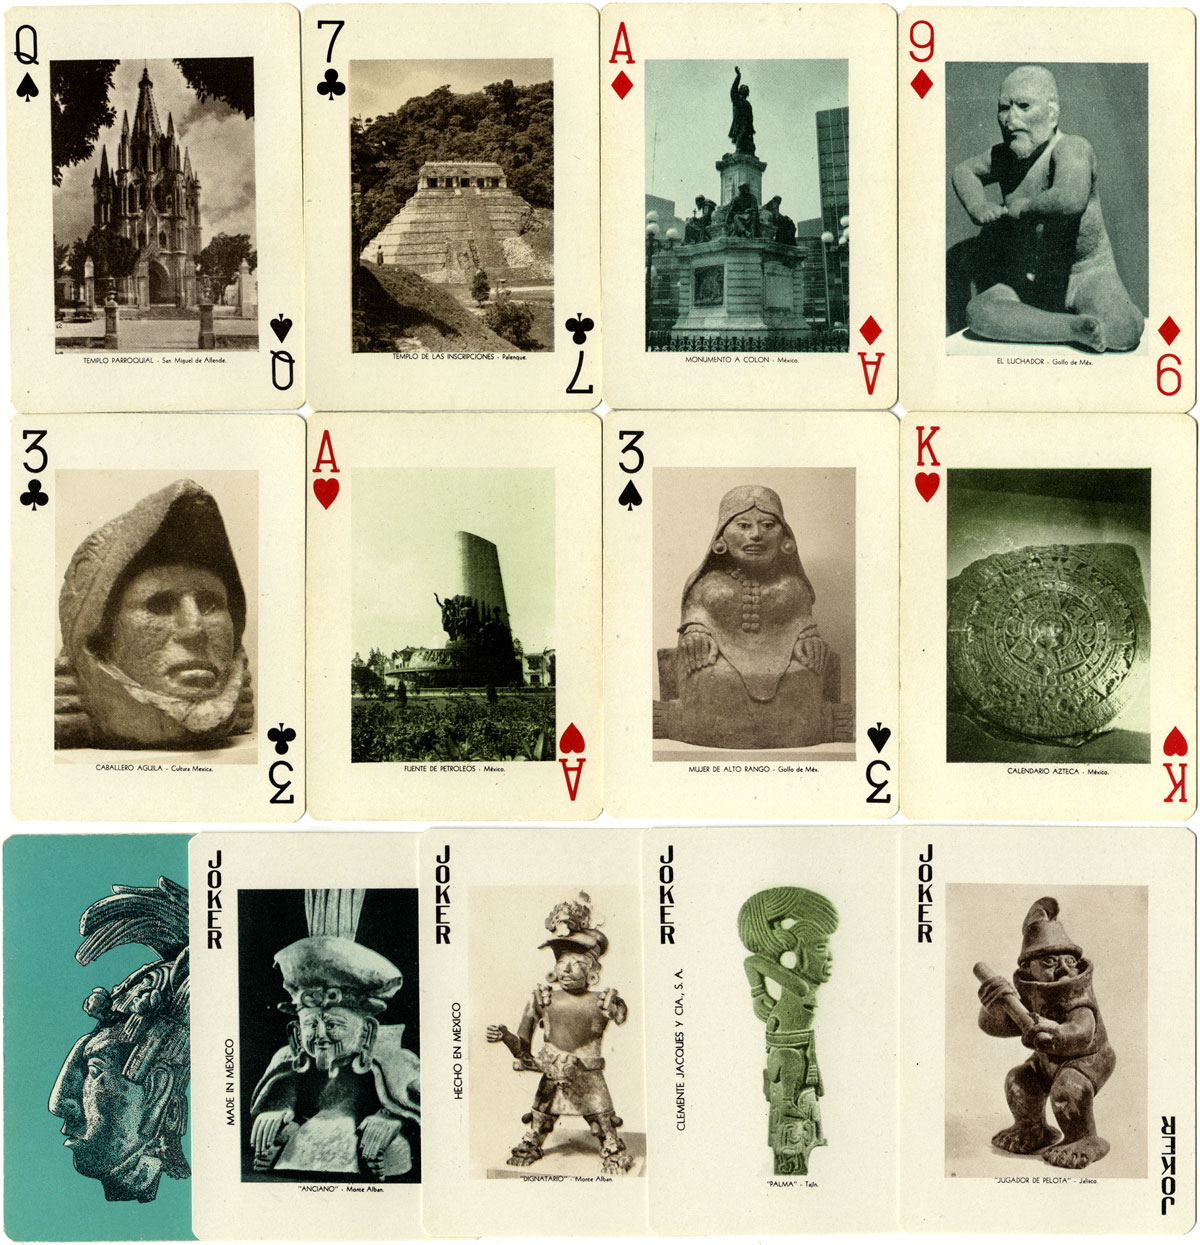 Souvenir of Mexico playing cards by Clemente Jacques y Cia, S.A.